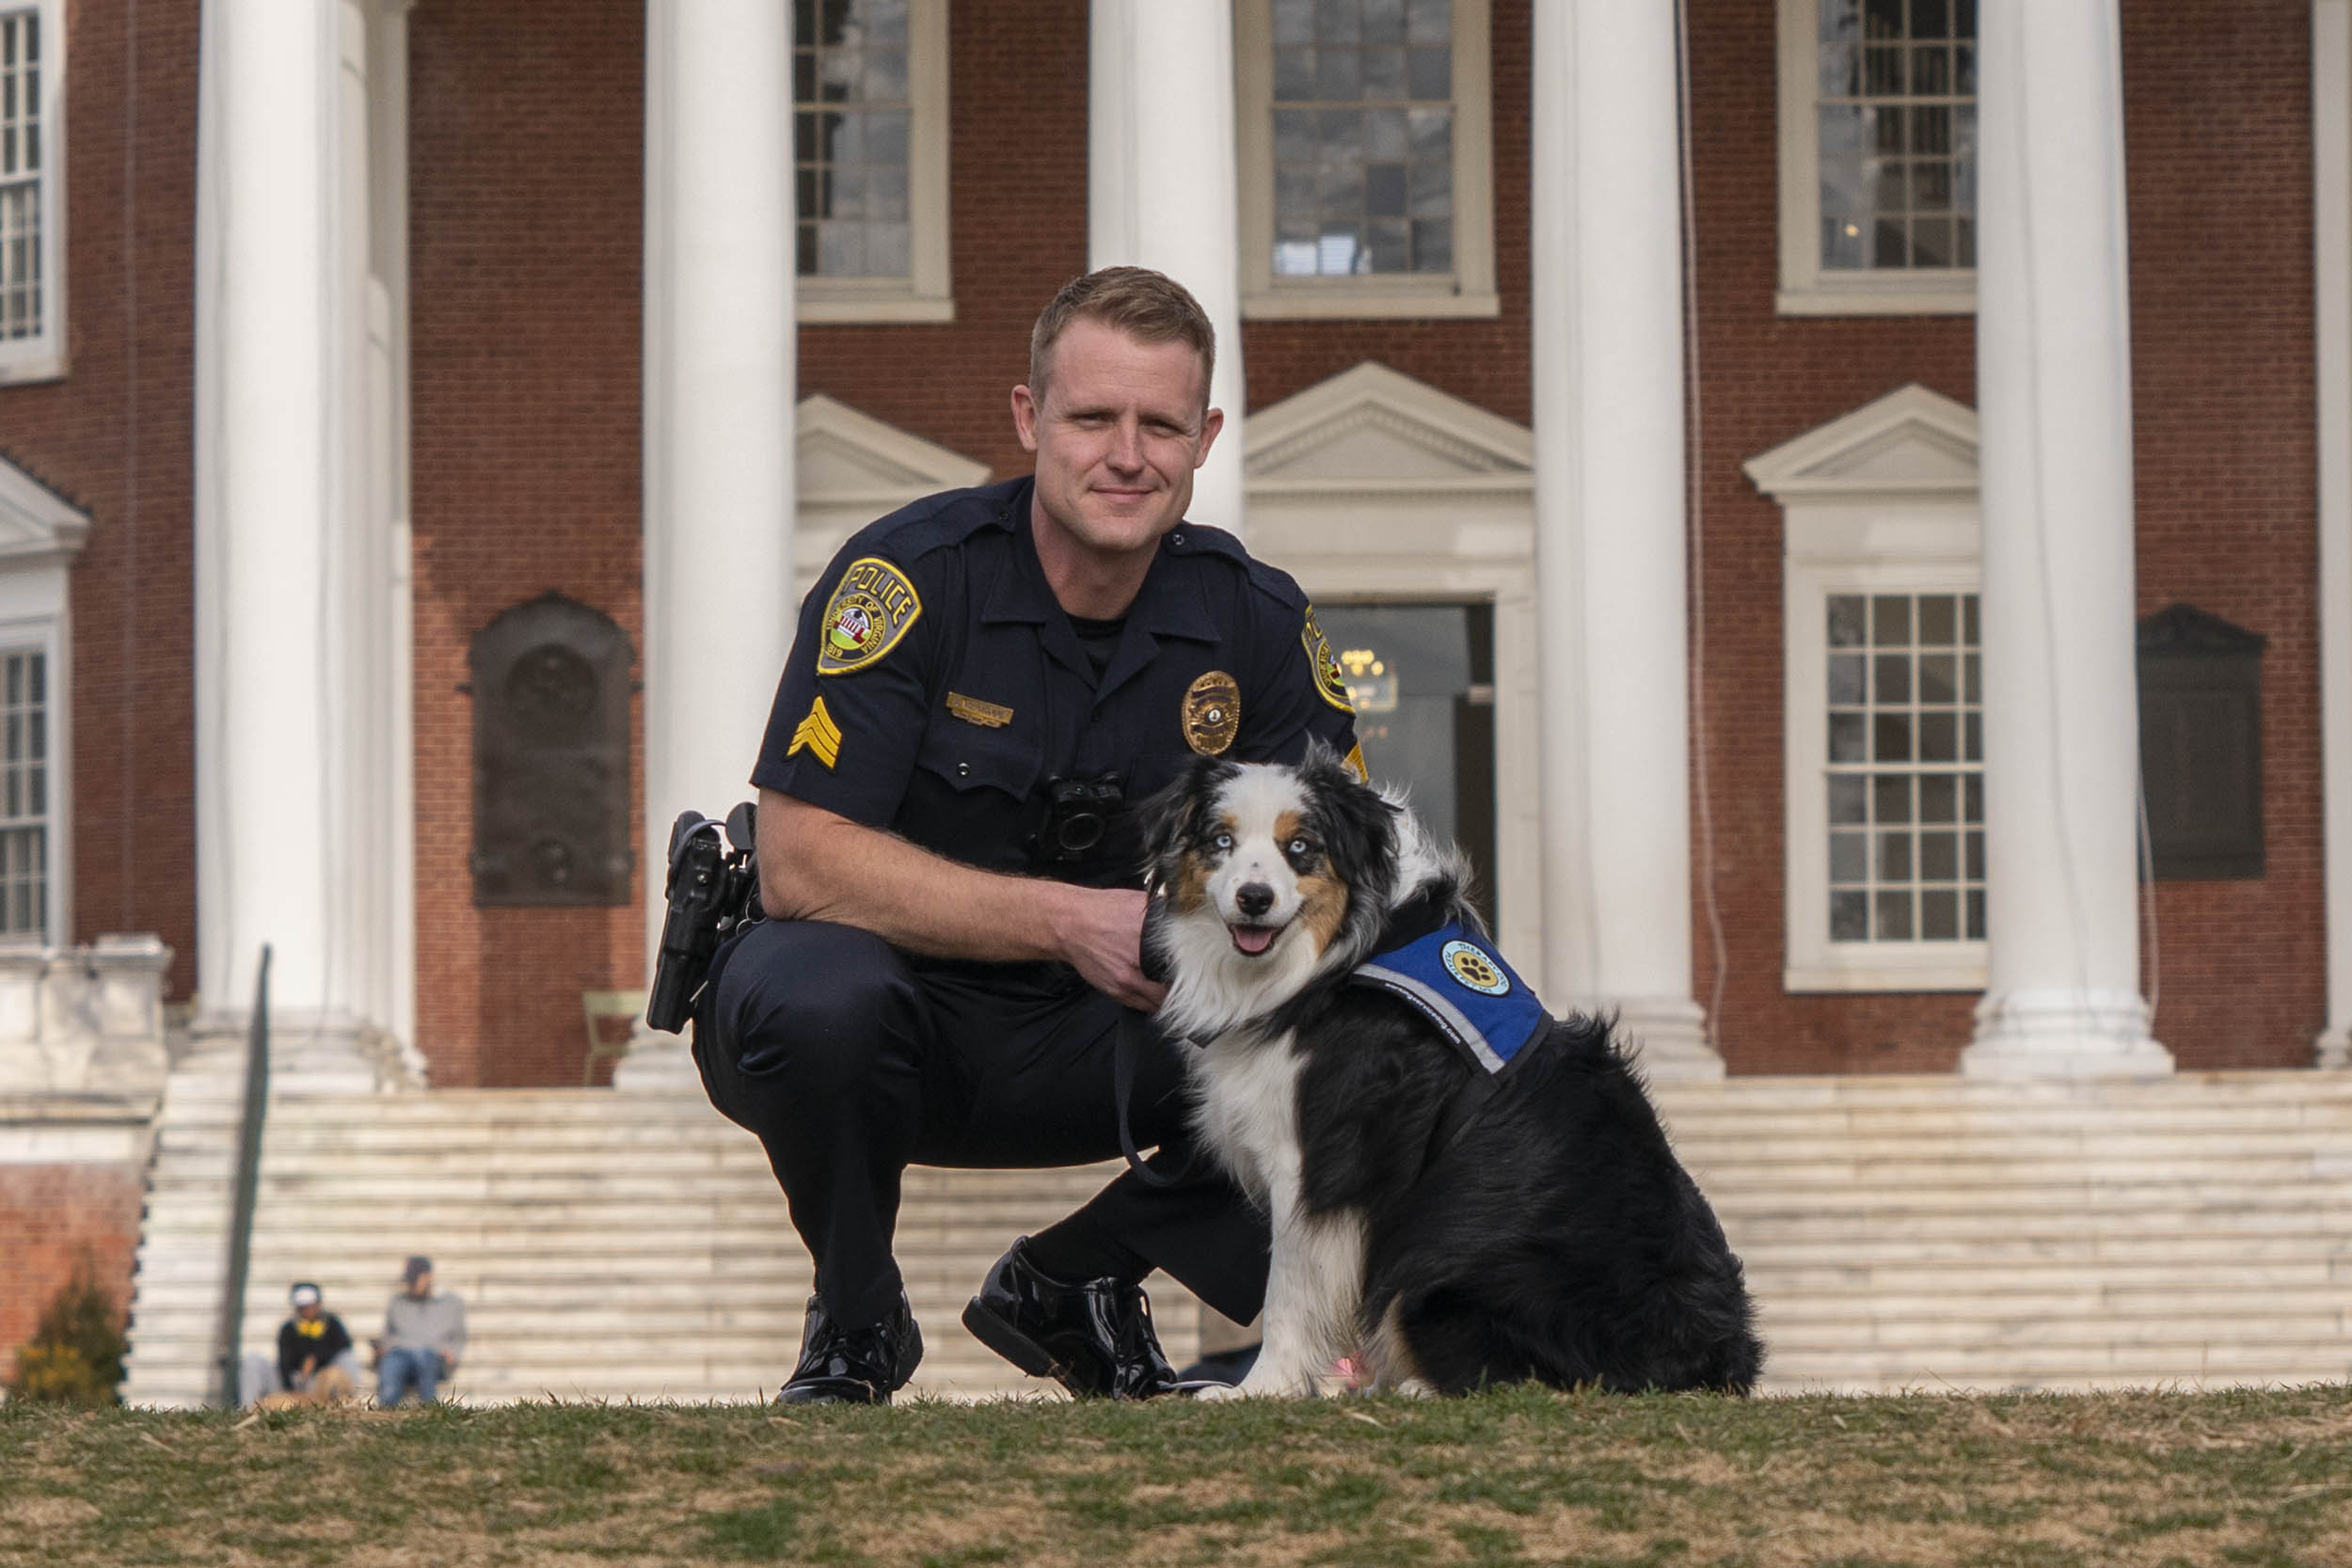 Sgt. Benjamin Rexrode purchased and paid for Cooper's training.